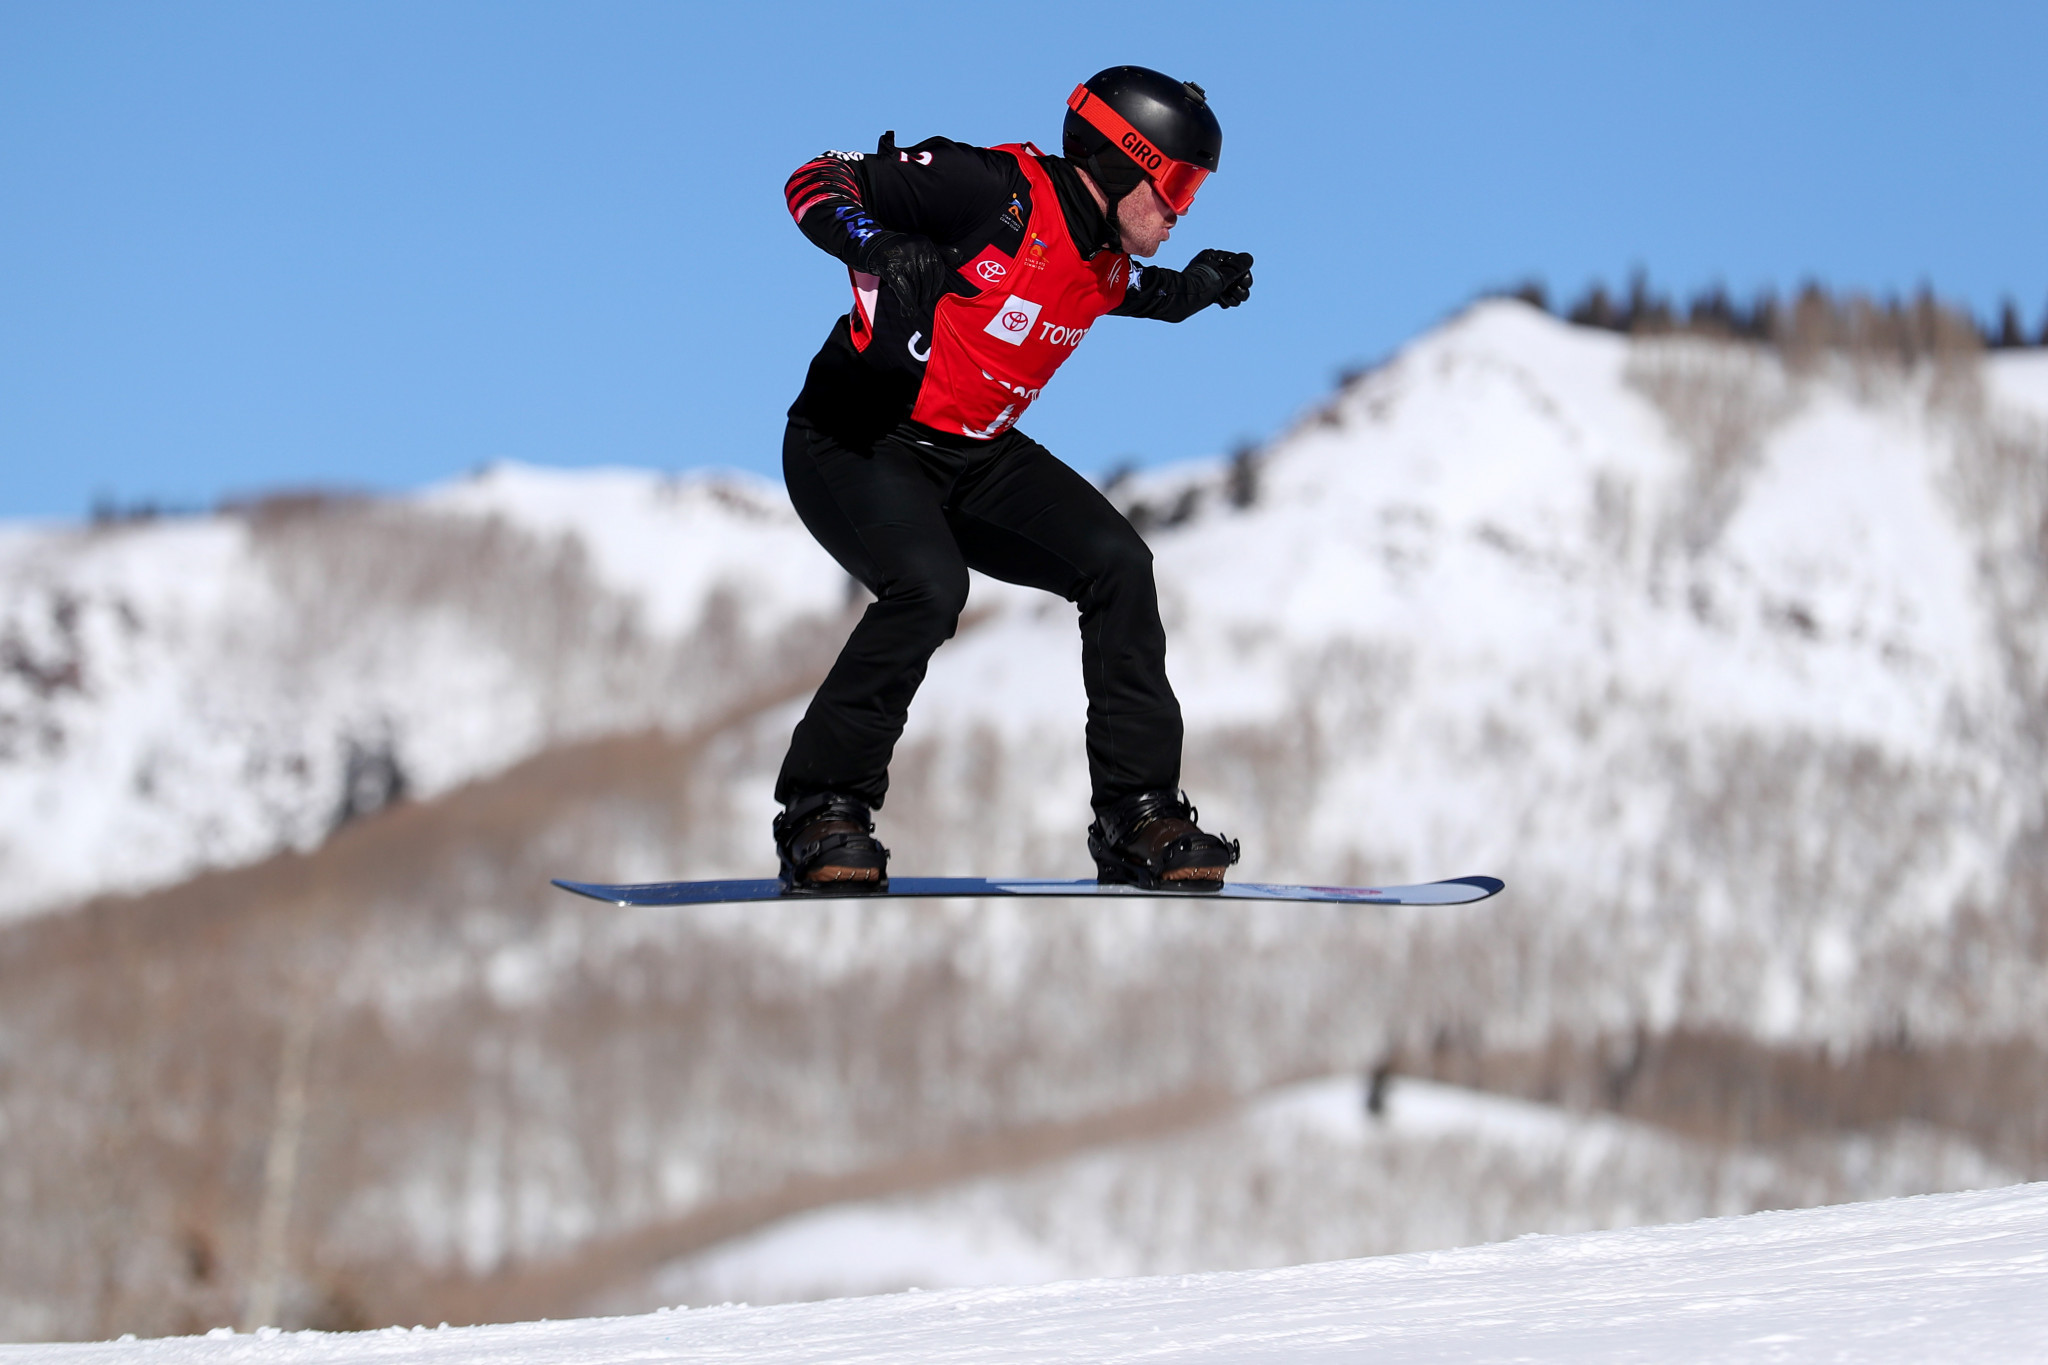 Jeff Archibald guided Mick Dierdorff to the men's snowboardcross world title in Utah in his last season as coach ©Getty Images